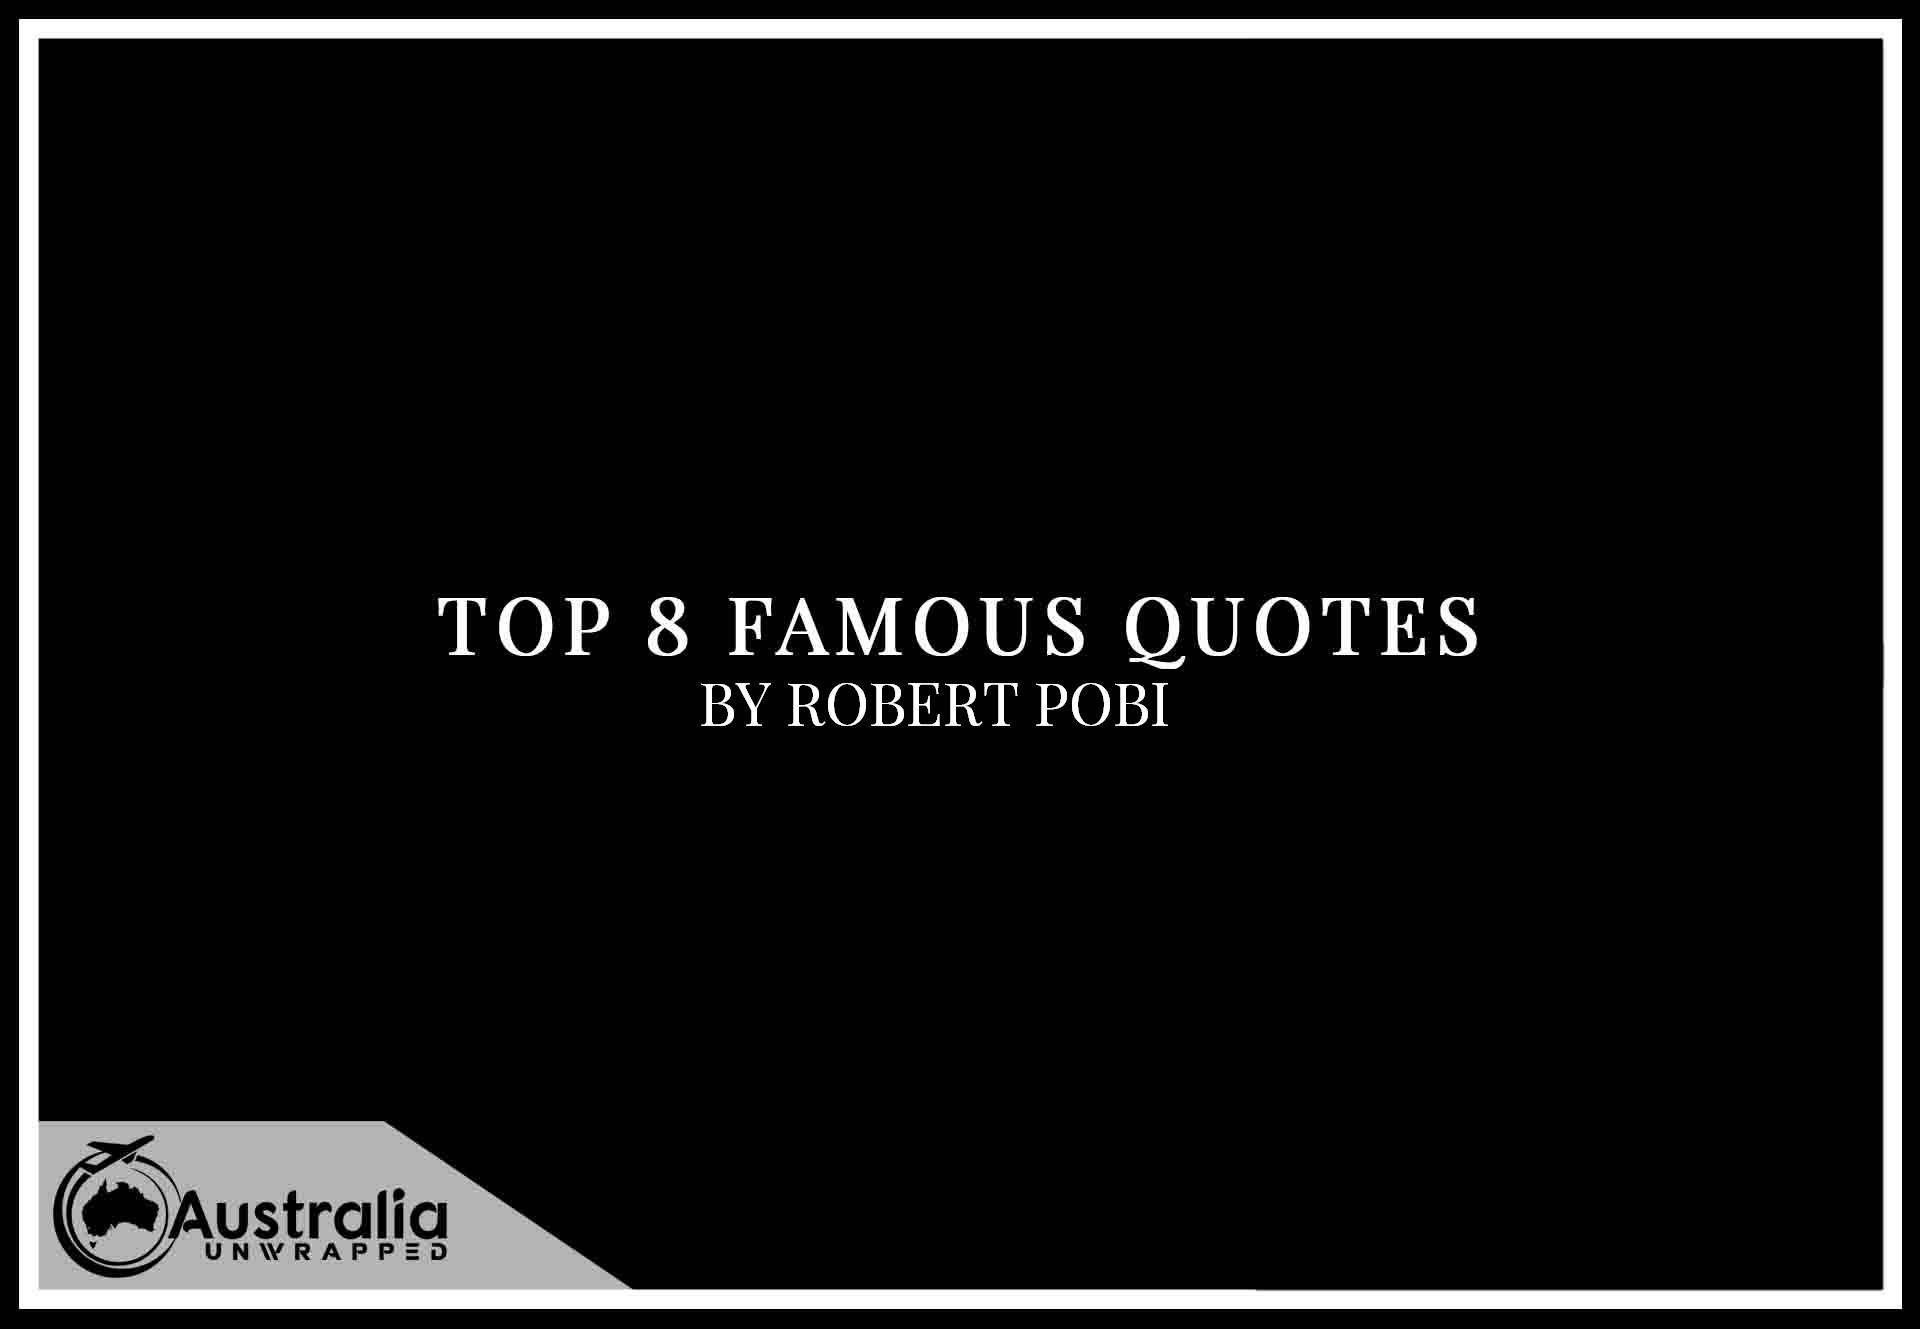 Robert Pobi's Top 8 Popular and Famous Quotes